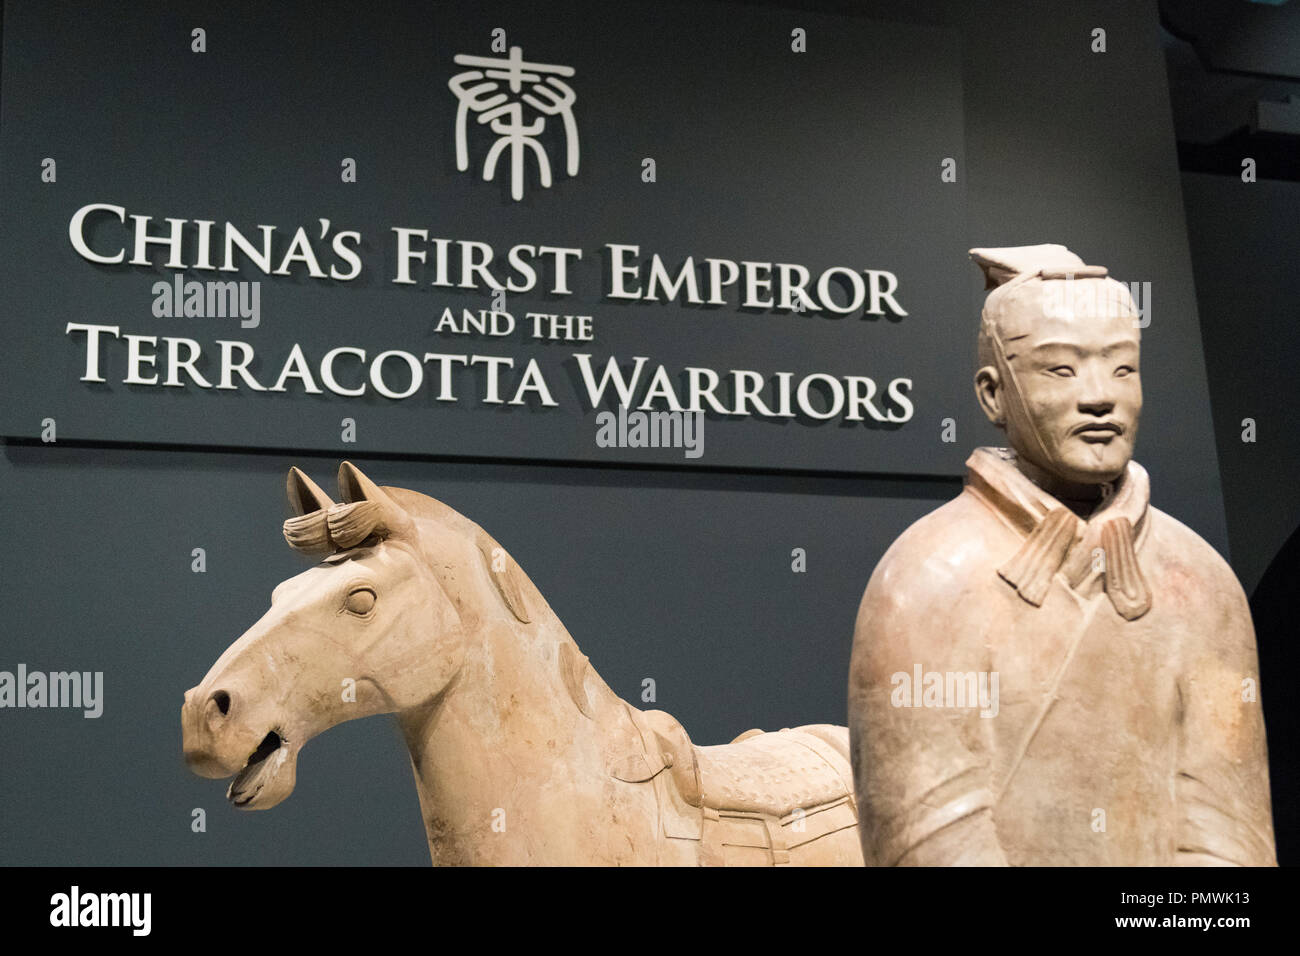 Liverpool William Brown Street World Museum China's First Emperor & The Terracotta Warriors Exhibition entrance soldier horse sign signs detail Stock Photo